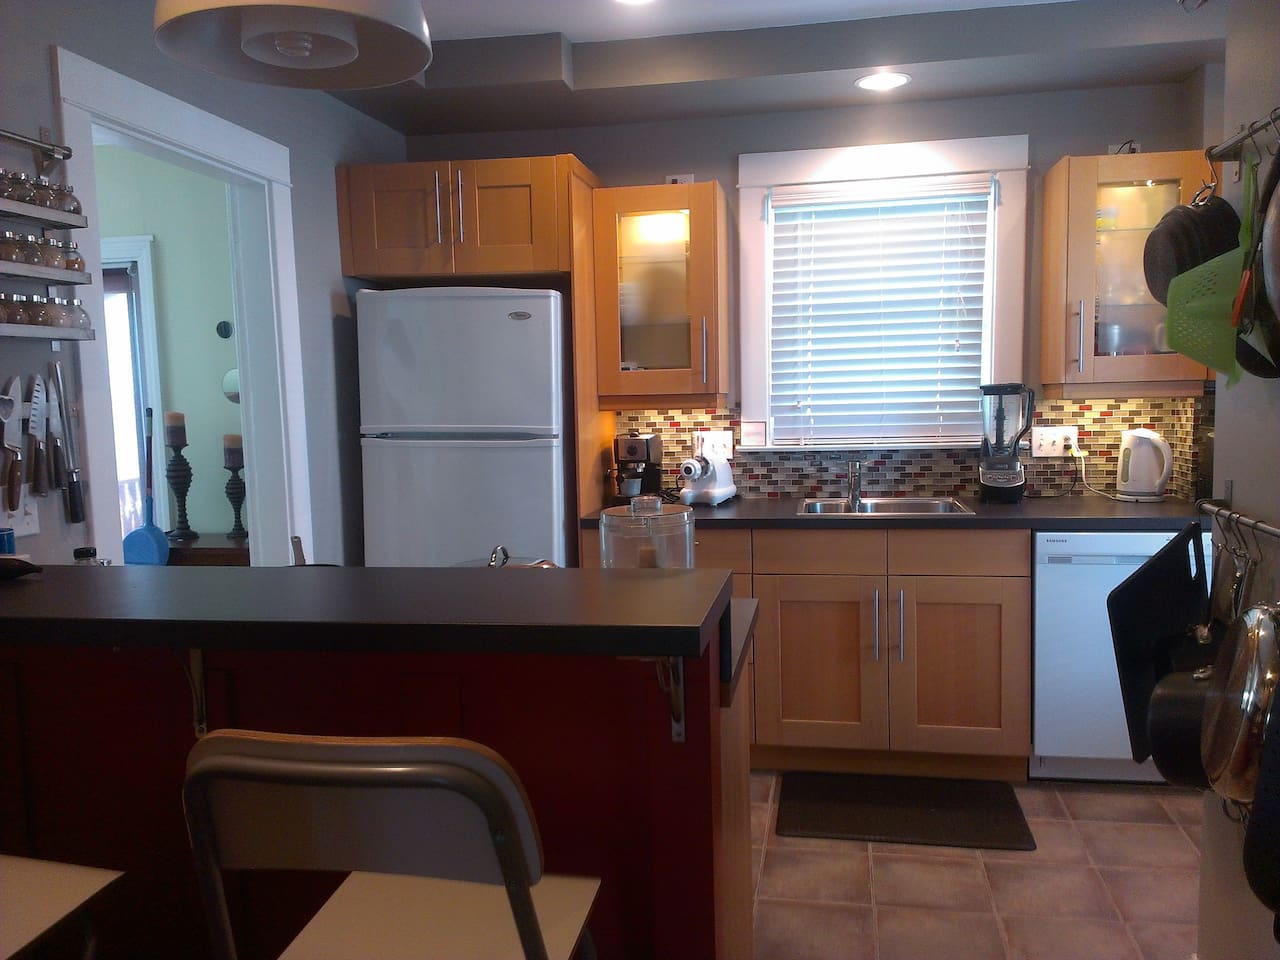 IKEA kitchen that I remodeled lovingly from scratch over a 9 month period.